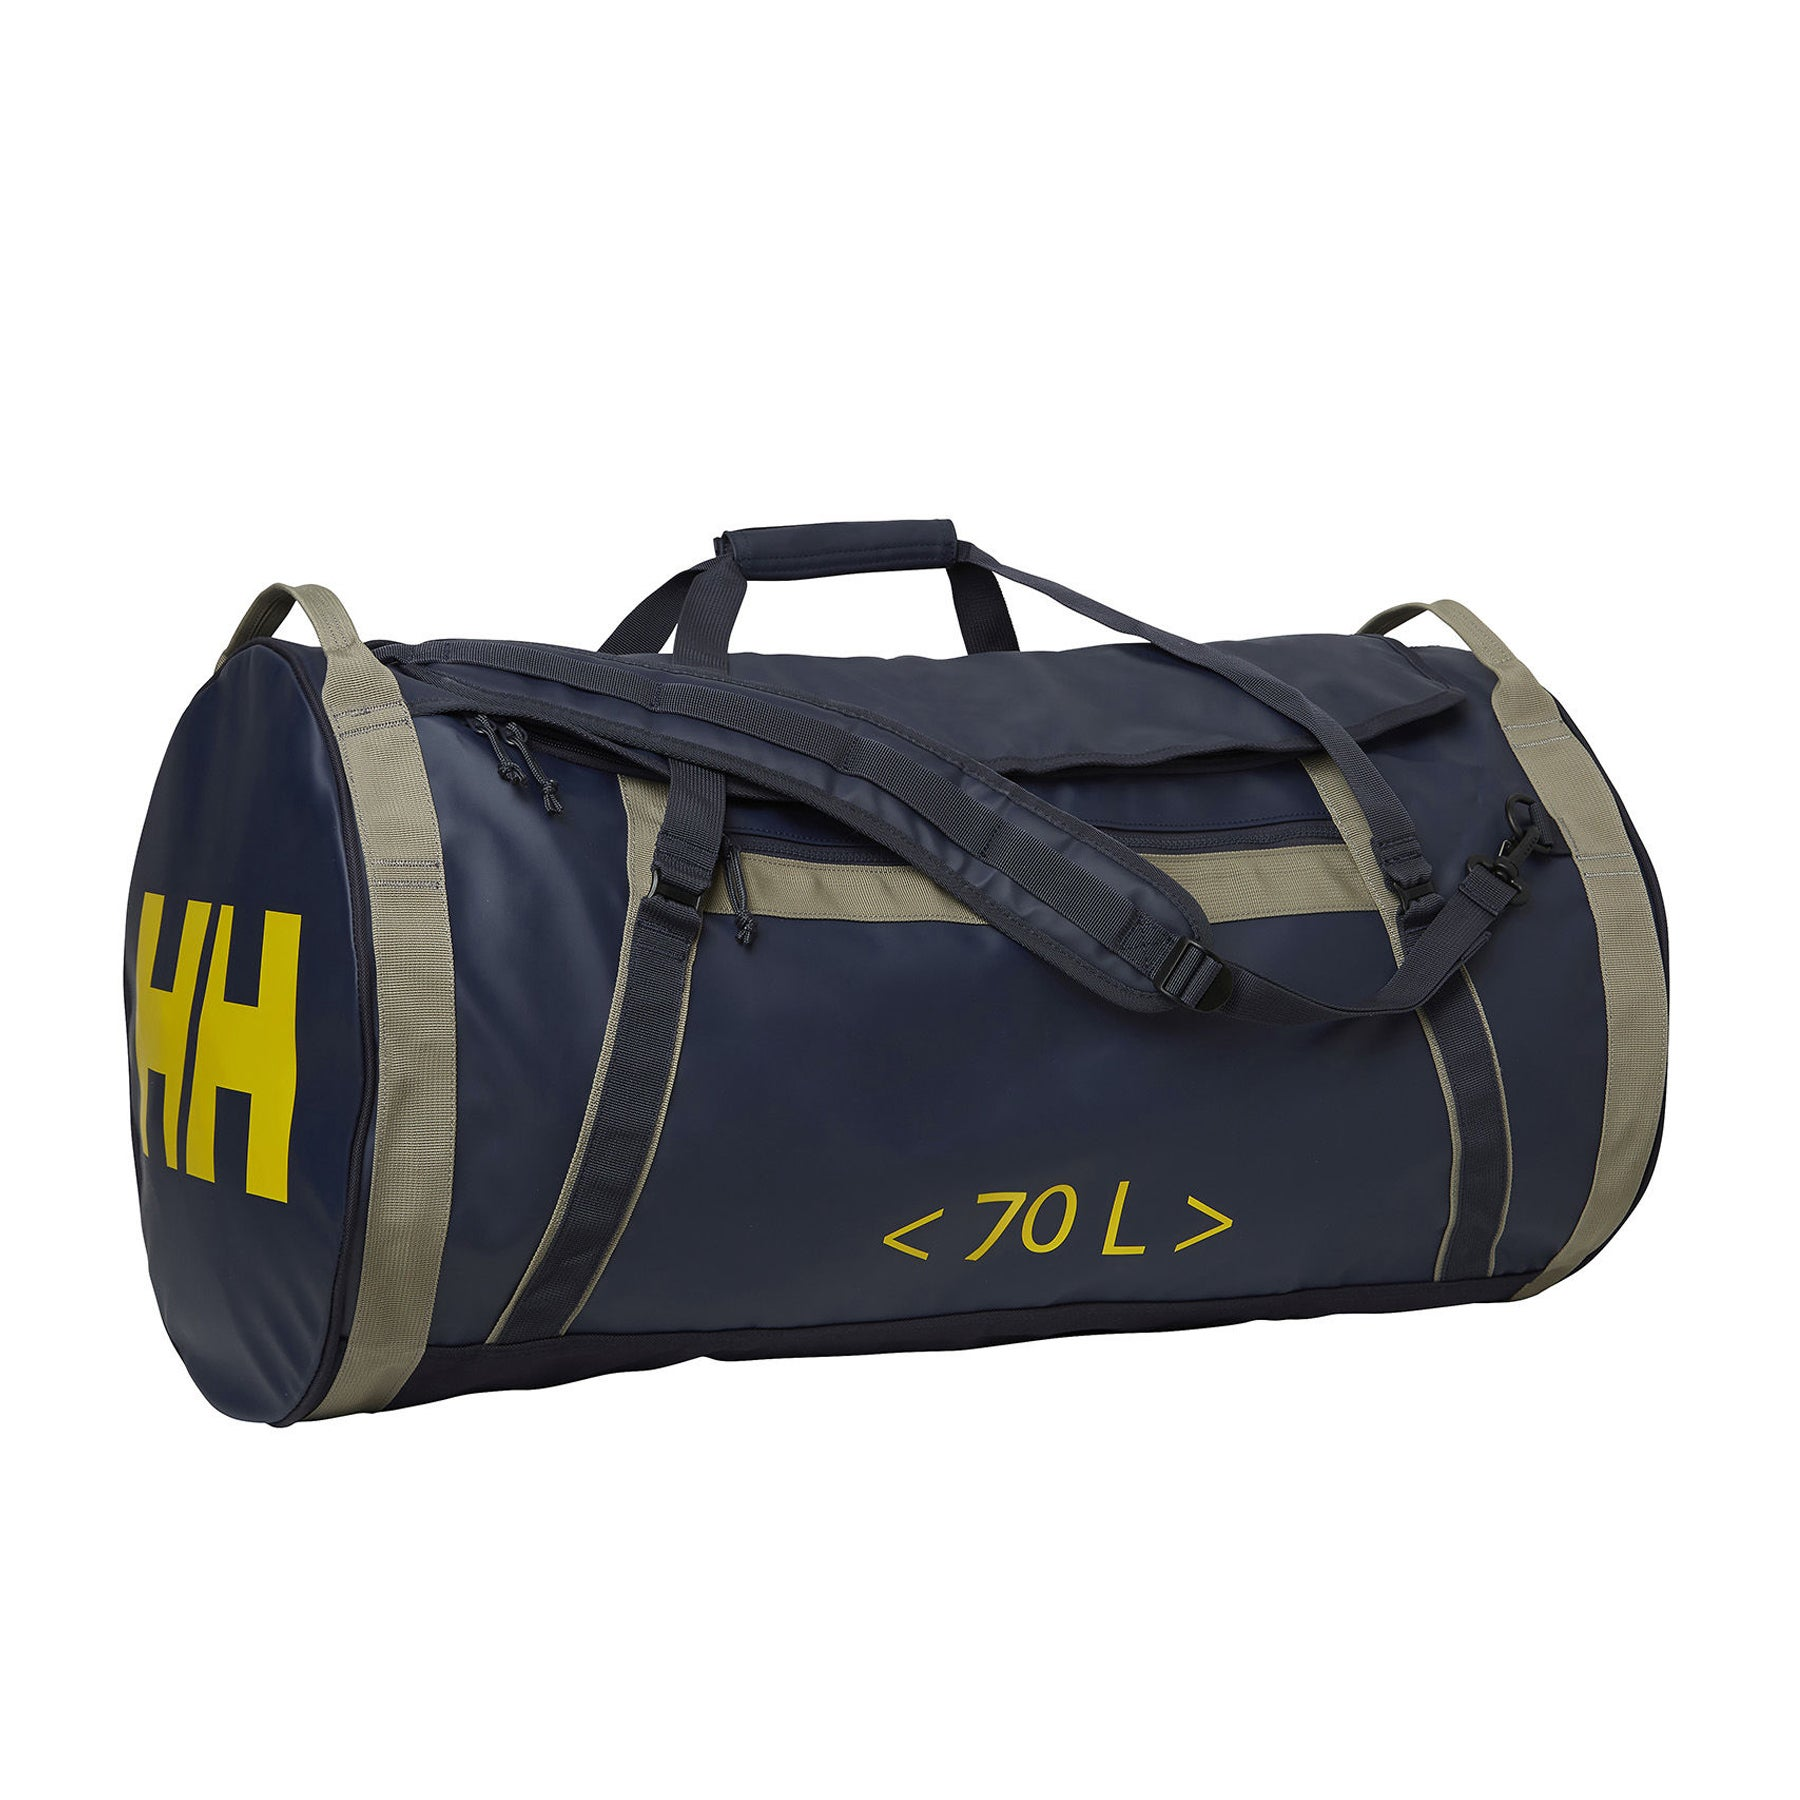 Helly Hansen HH2 70L Duffle Bag - Graphite Blue